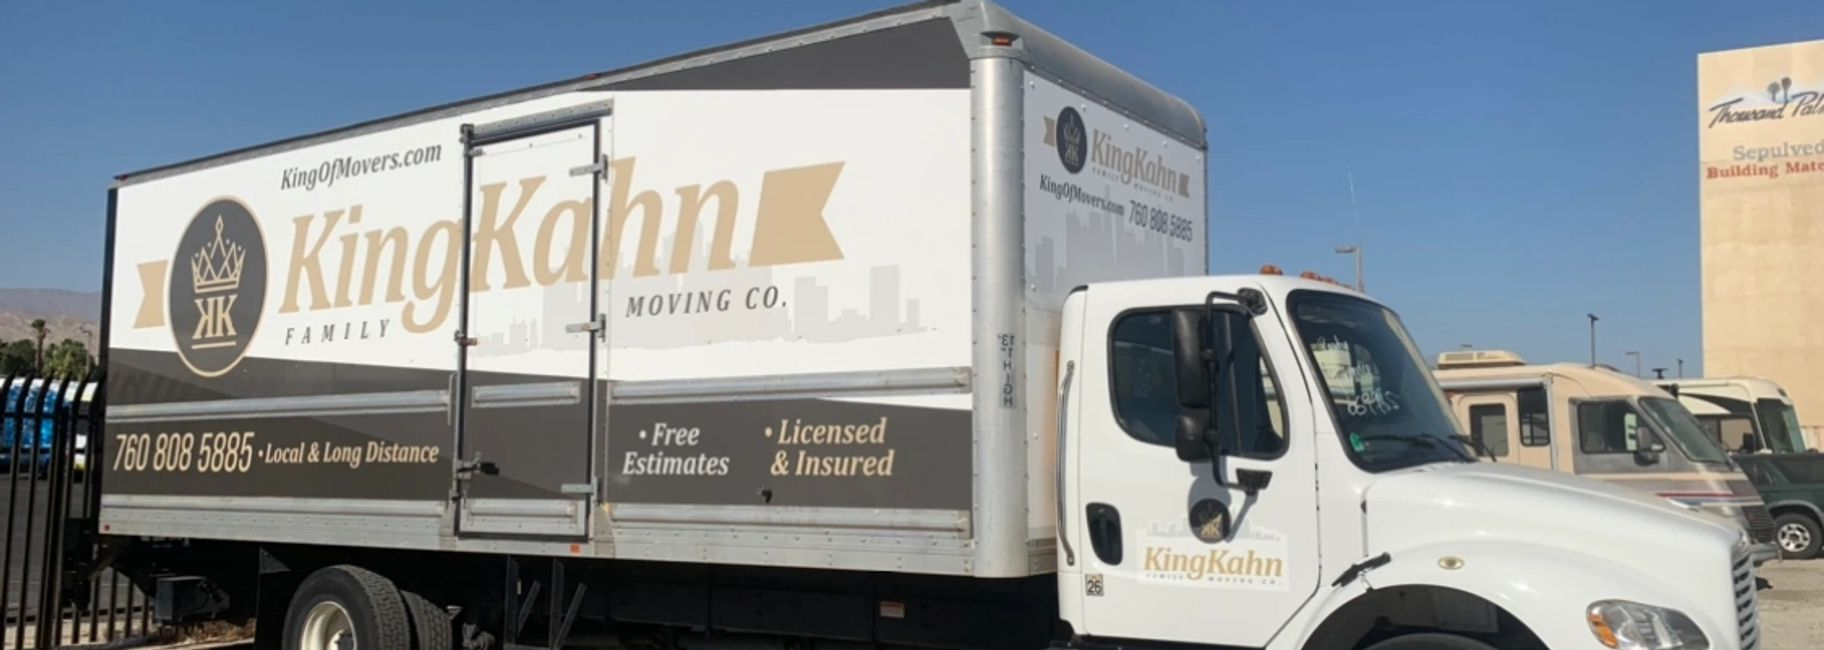 Professional Moving Company Located In Palm Desert, CA 92260, Palm Springs, CA 92263 Indio, CA 92203